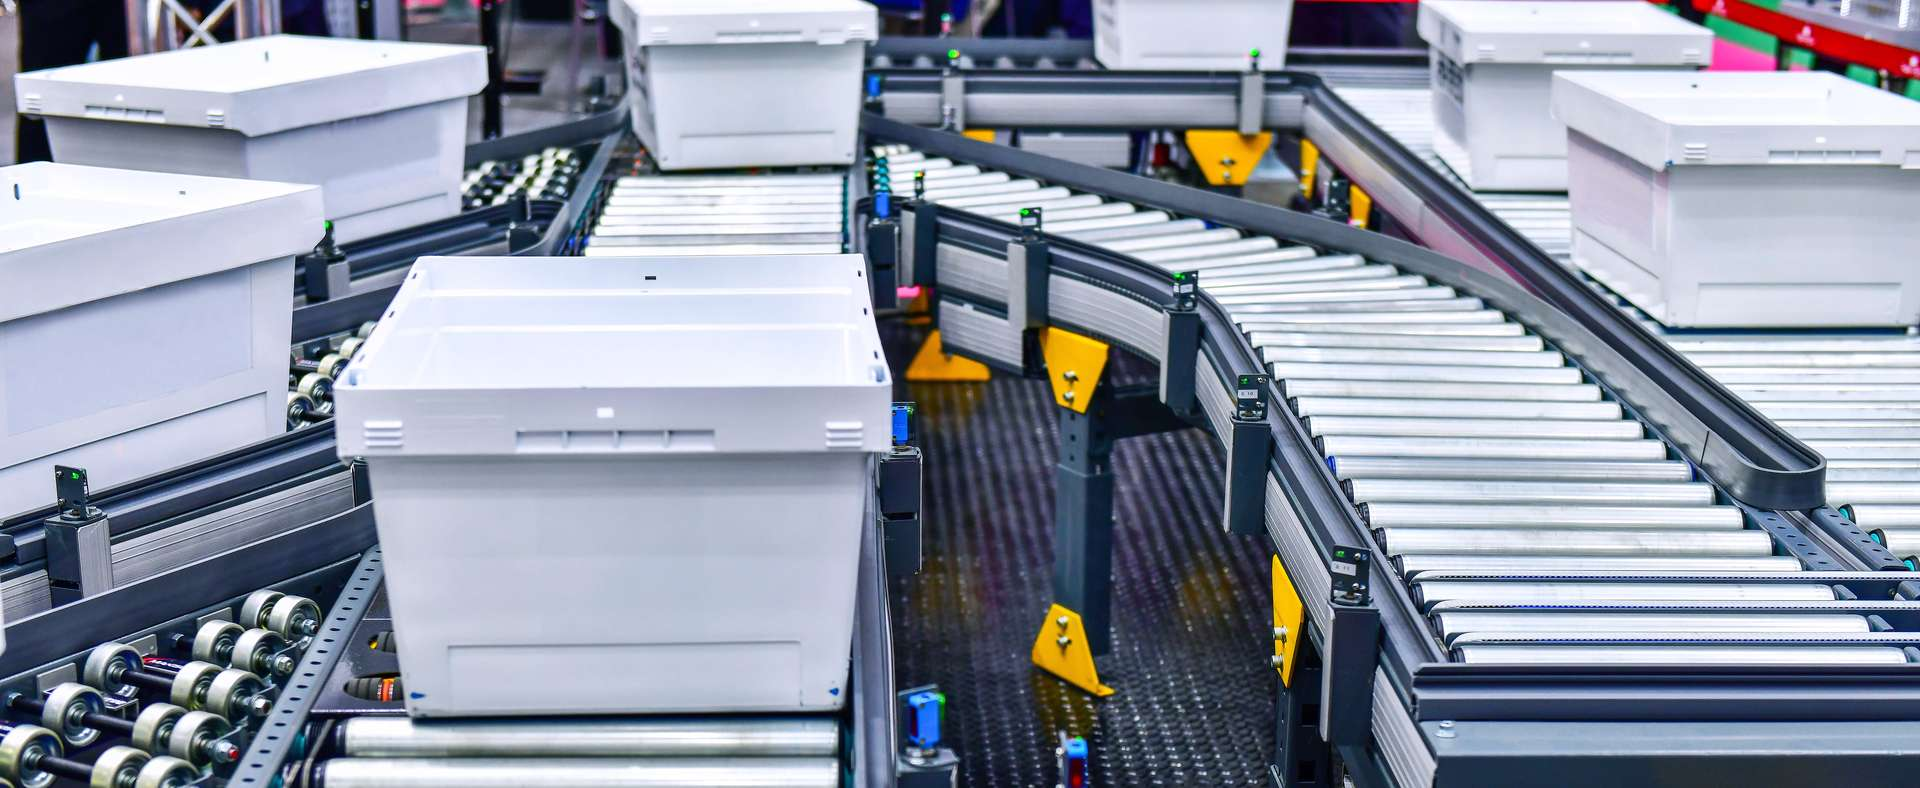 3 Warehouse Technologies to Improve Efficiency